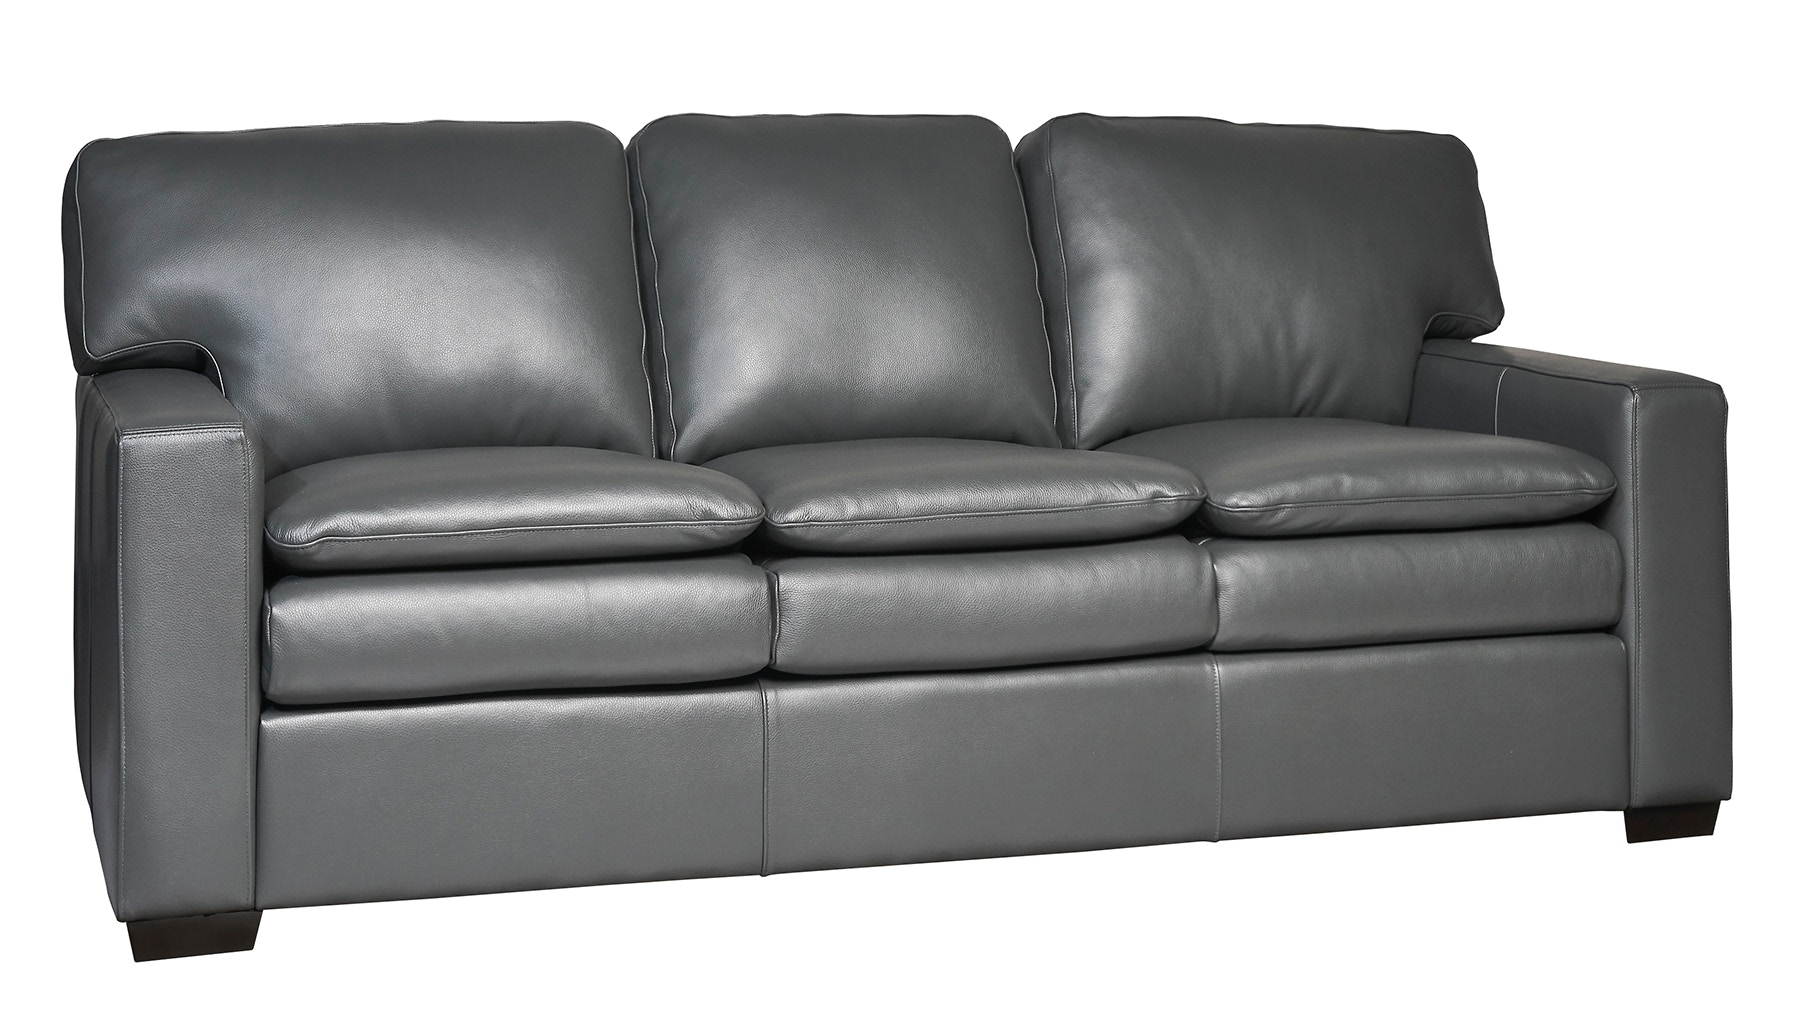 comfortable leather couch urban leather 3002sfa leather sofa living room sofas woodleys furniture colorado springs fort